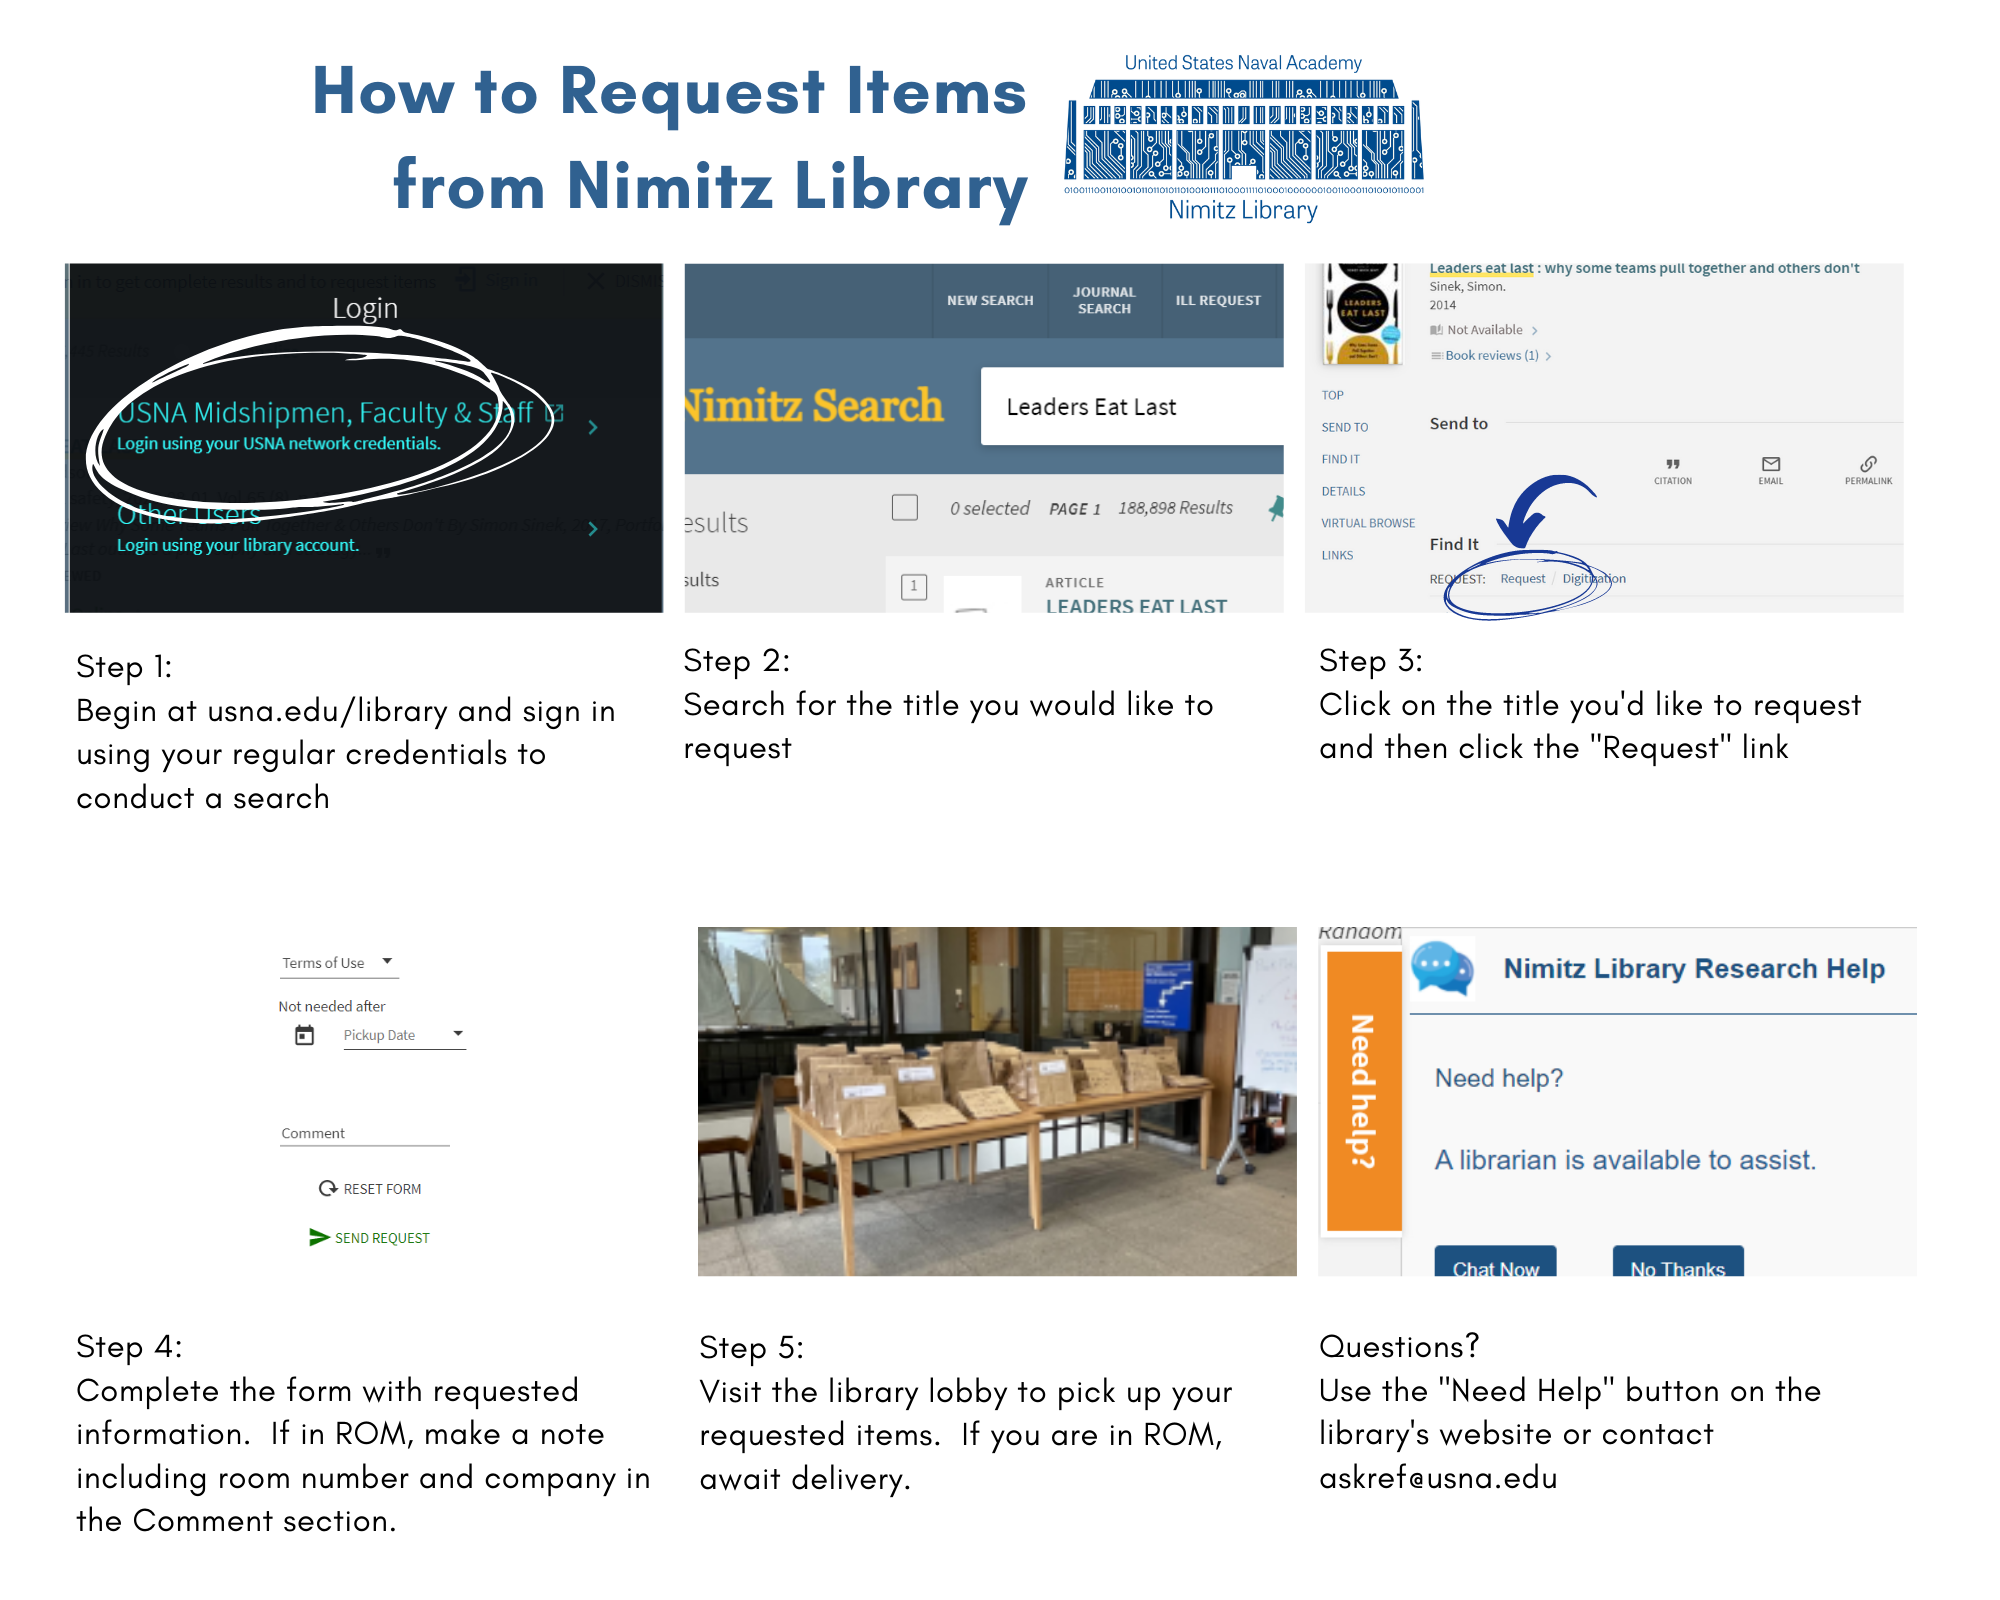 Procedure for requesting items